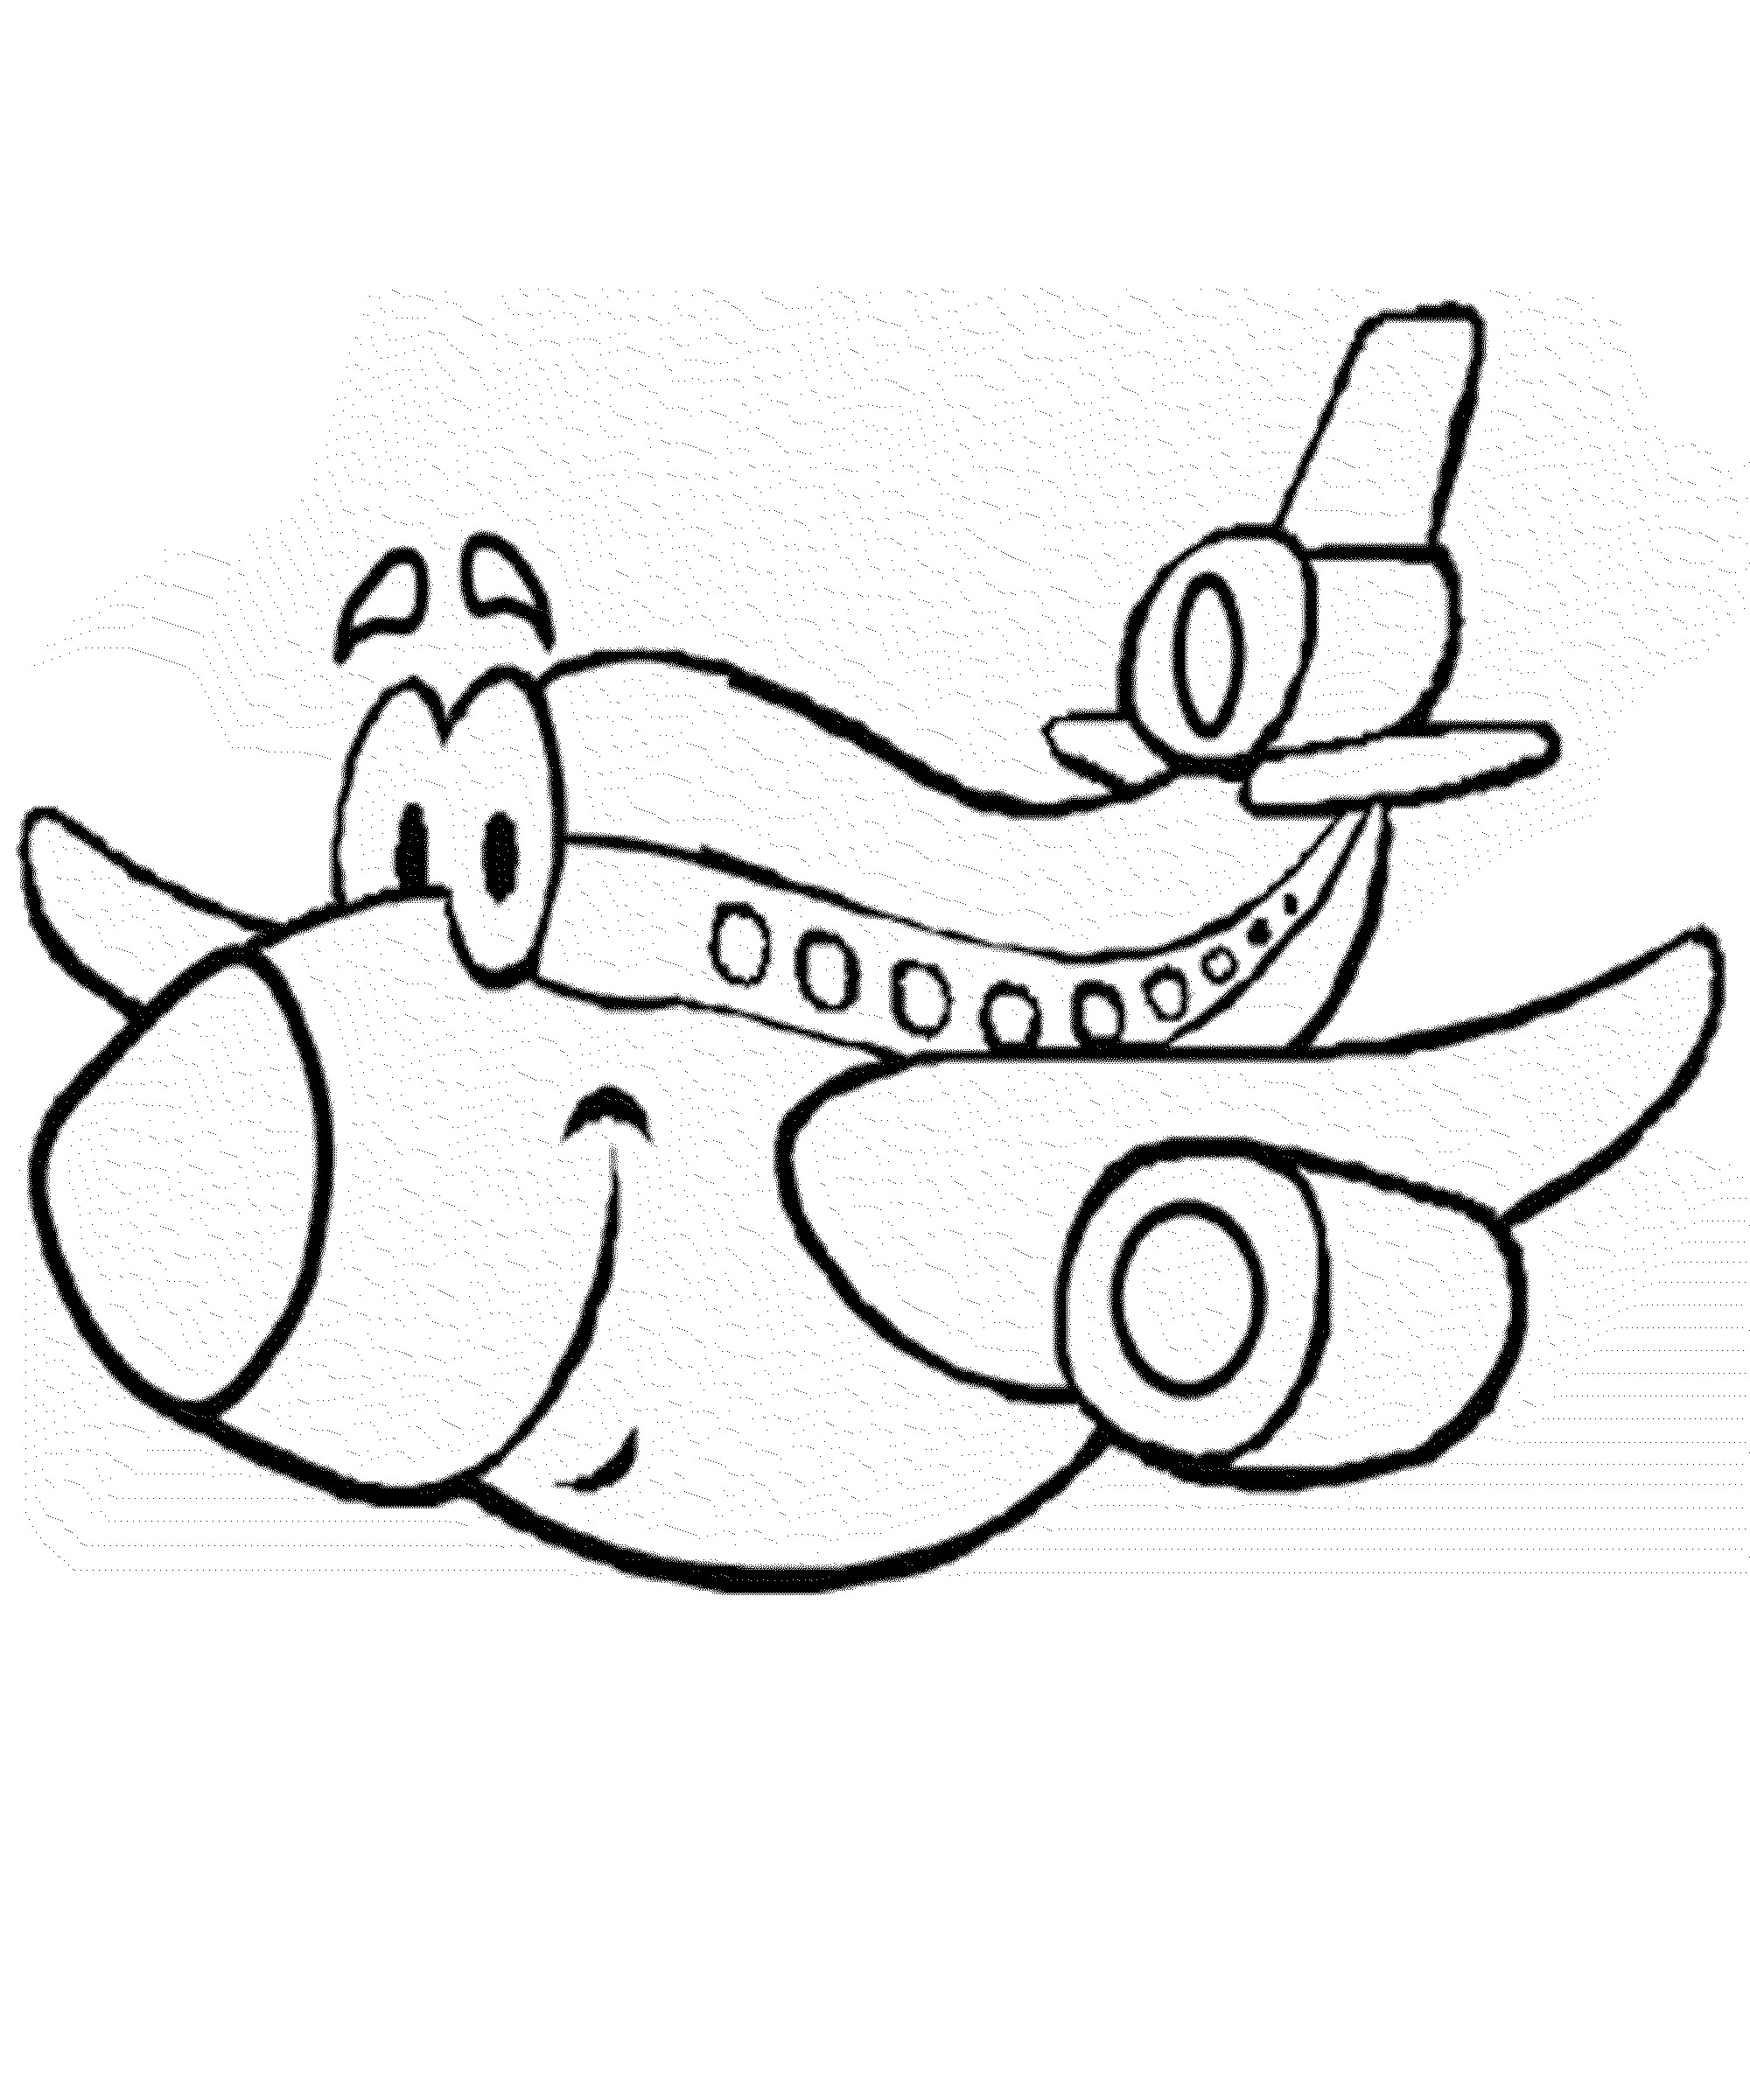 2000x2400 Planes Coloring Pages For Kids Freecolorngpages.co